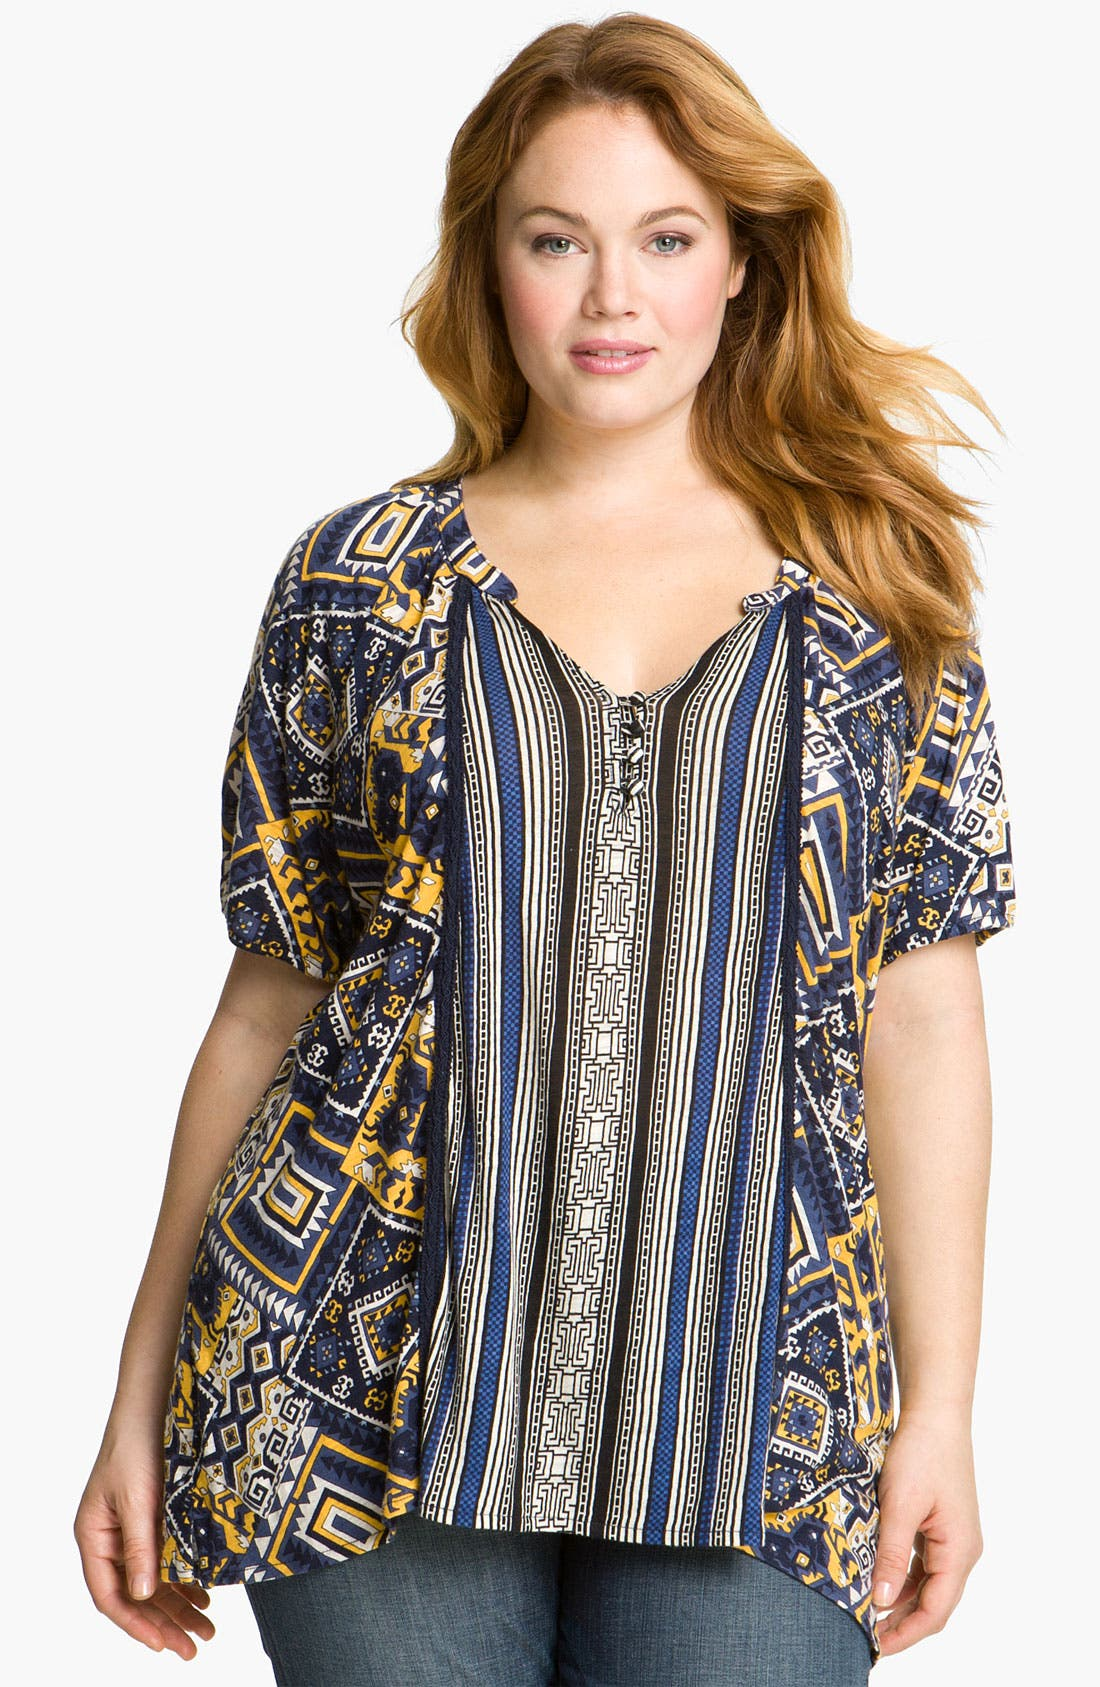 Alternate Image 1 Selected - Lucky Brand 'Tulum Michaela' Top (Plus)